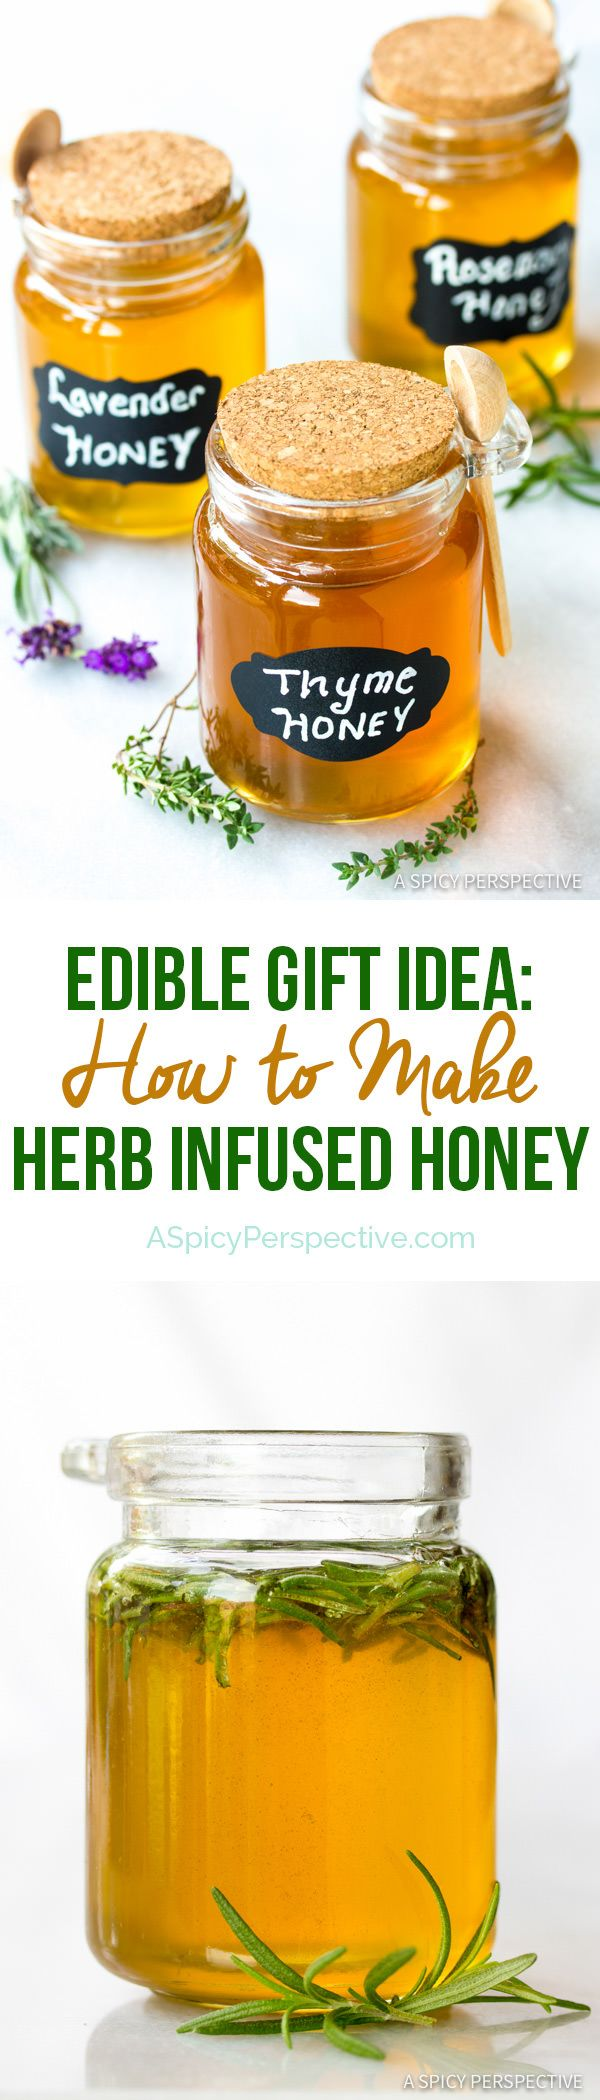 How to Make Herb Infused Honey | A Spicy Perspective #ediblegifts #holiday via @spicyperspectiv